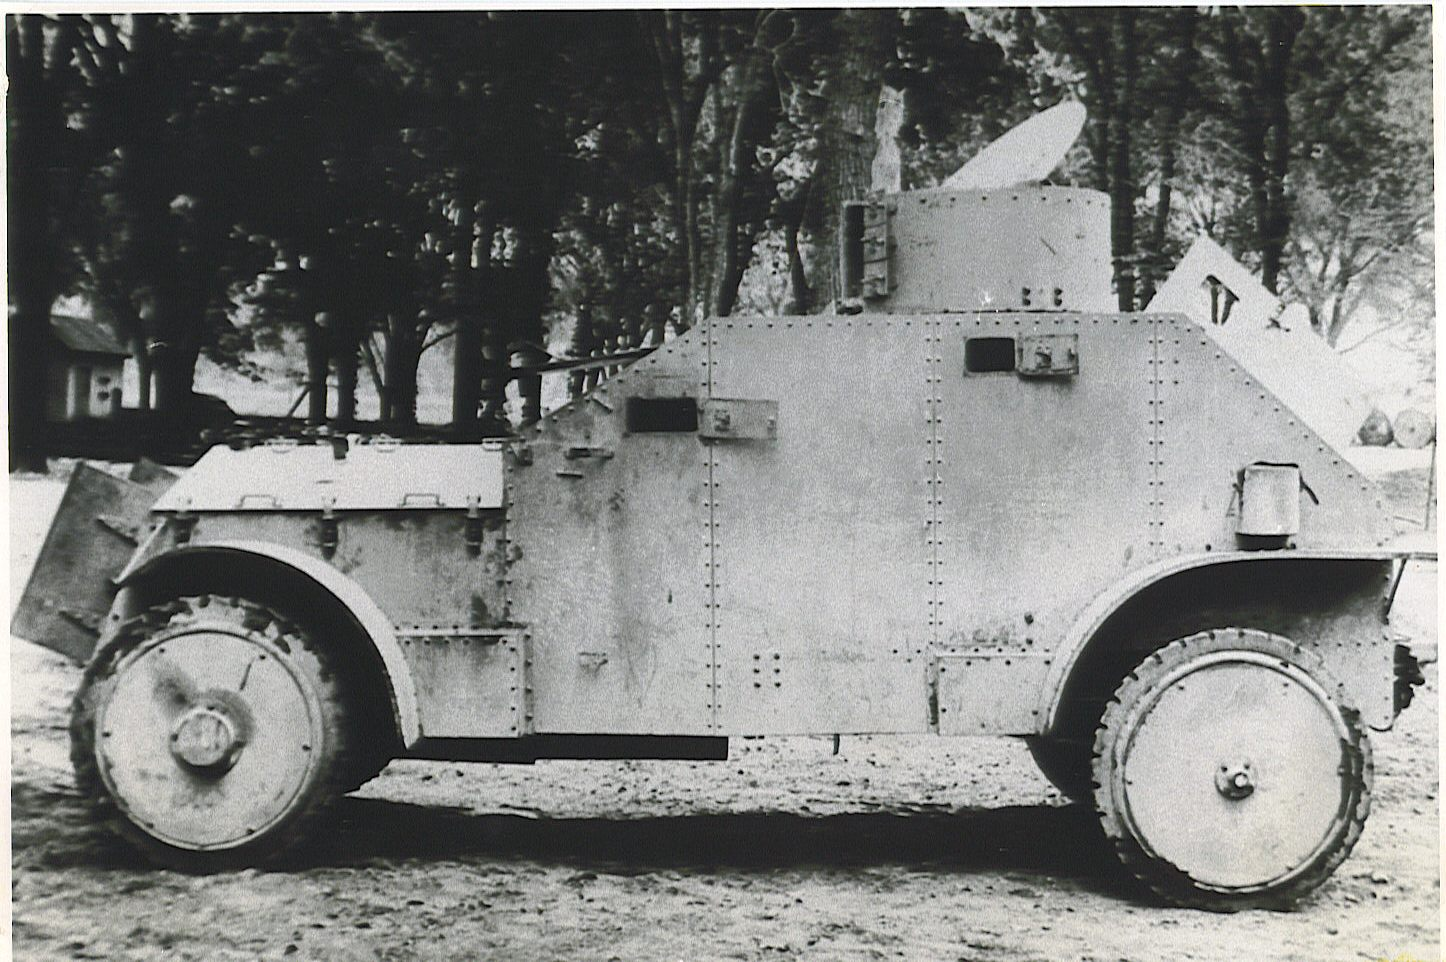 Probably the best known side profile of the prototype - Photo: Armored Car, A History of American Wheeled Combat Vehicles by R.P.Hunnicutt